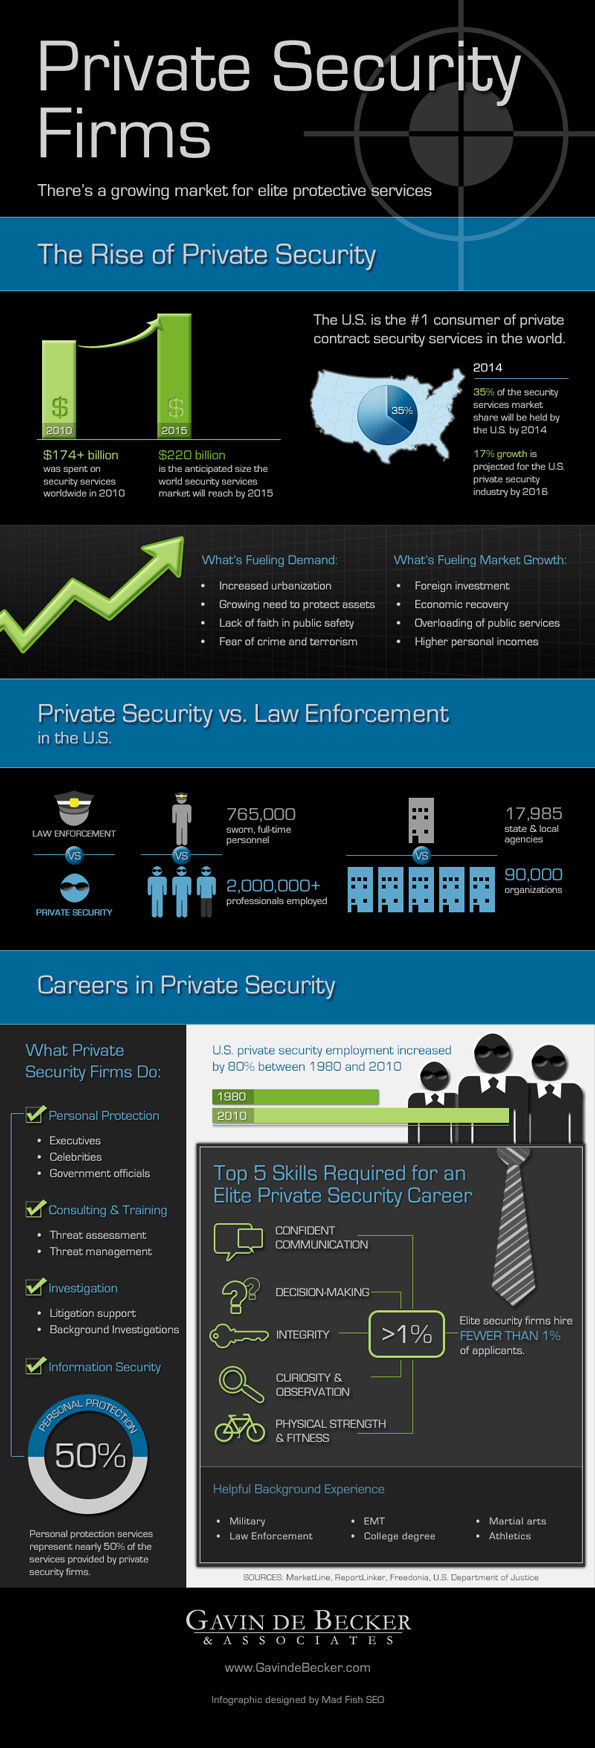 Careers In Private Security Infographic